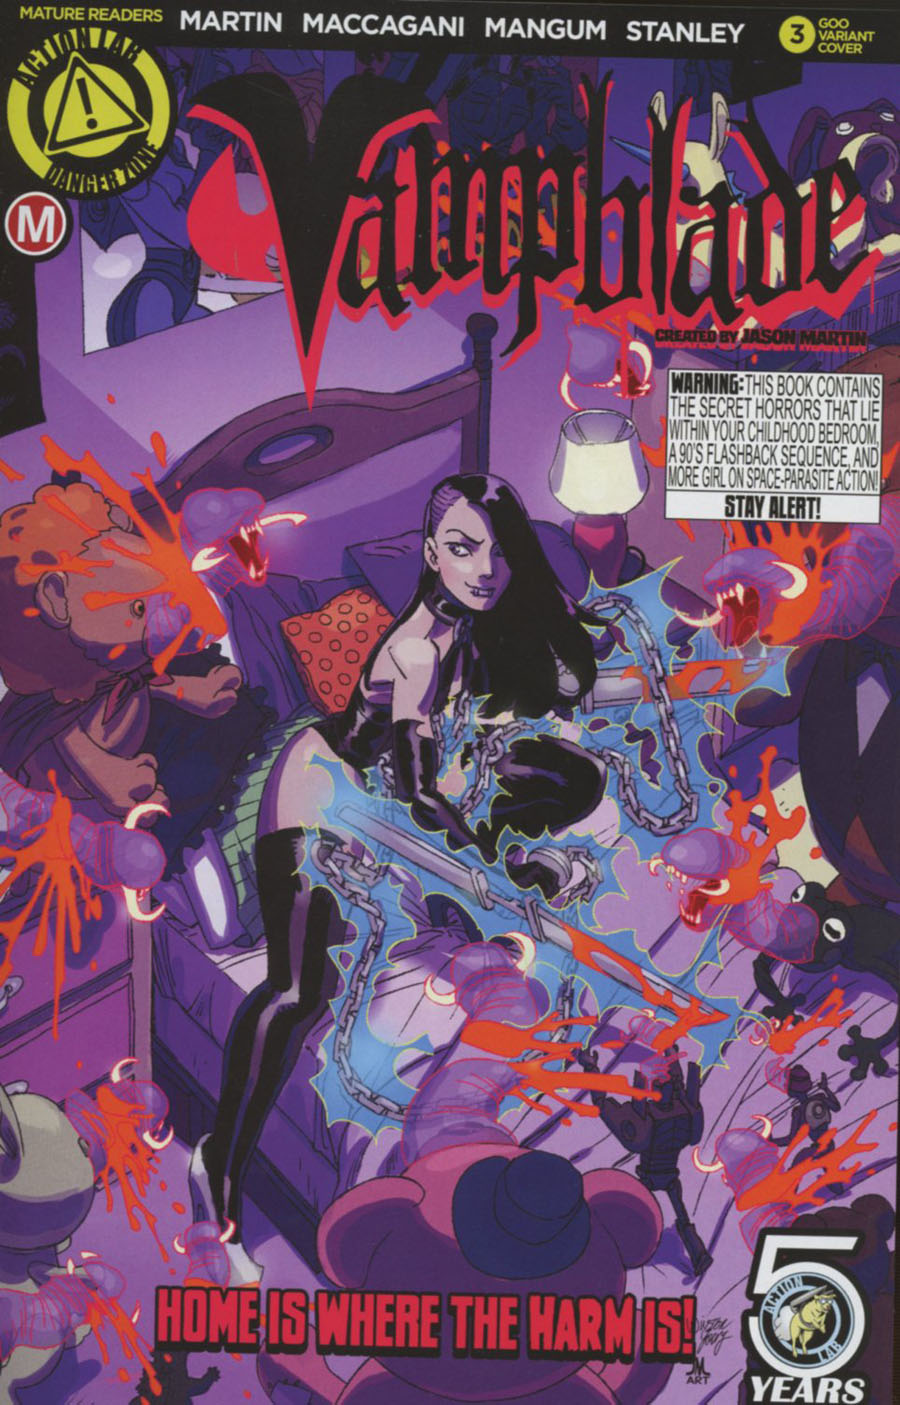 Vampblade #3 Cover B Variant Winston Young Goo Cover